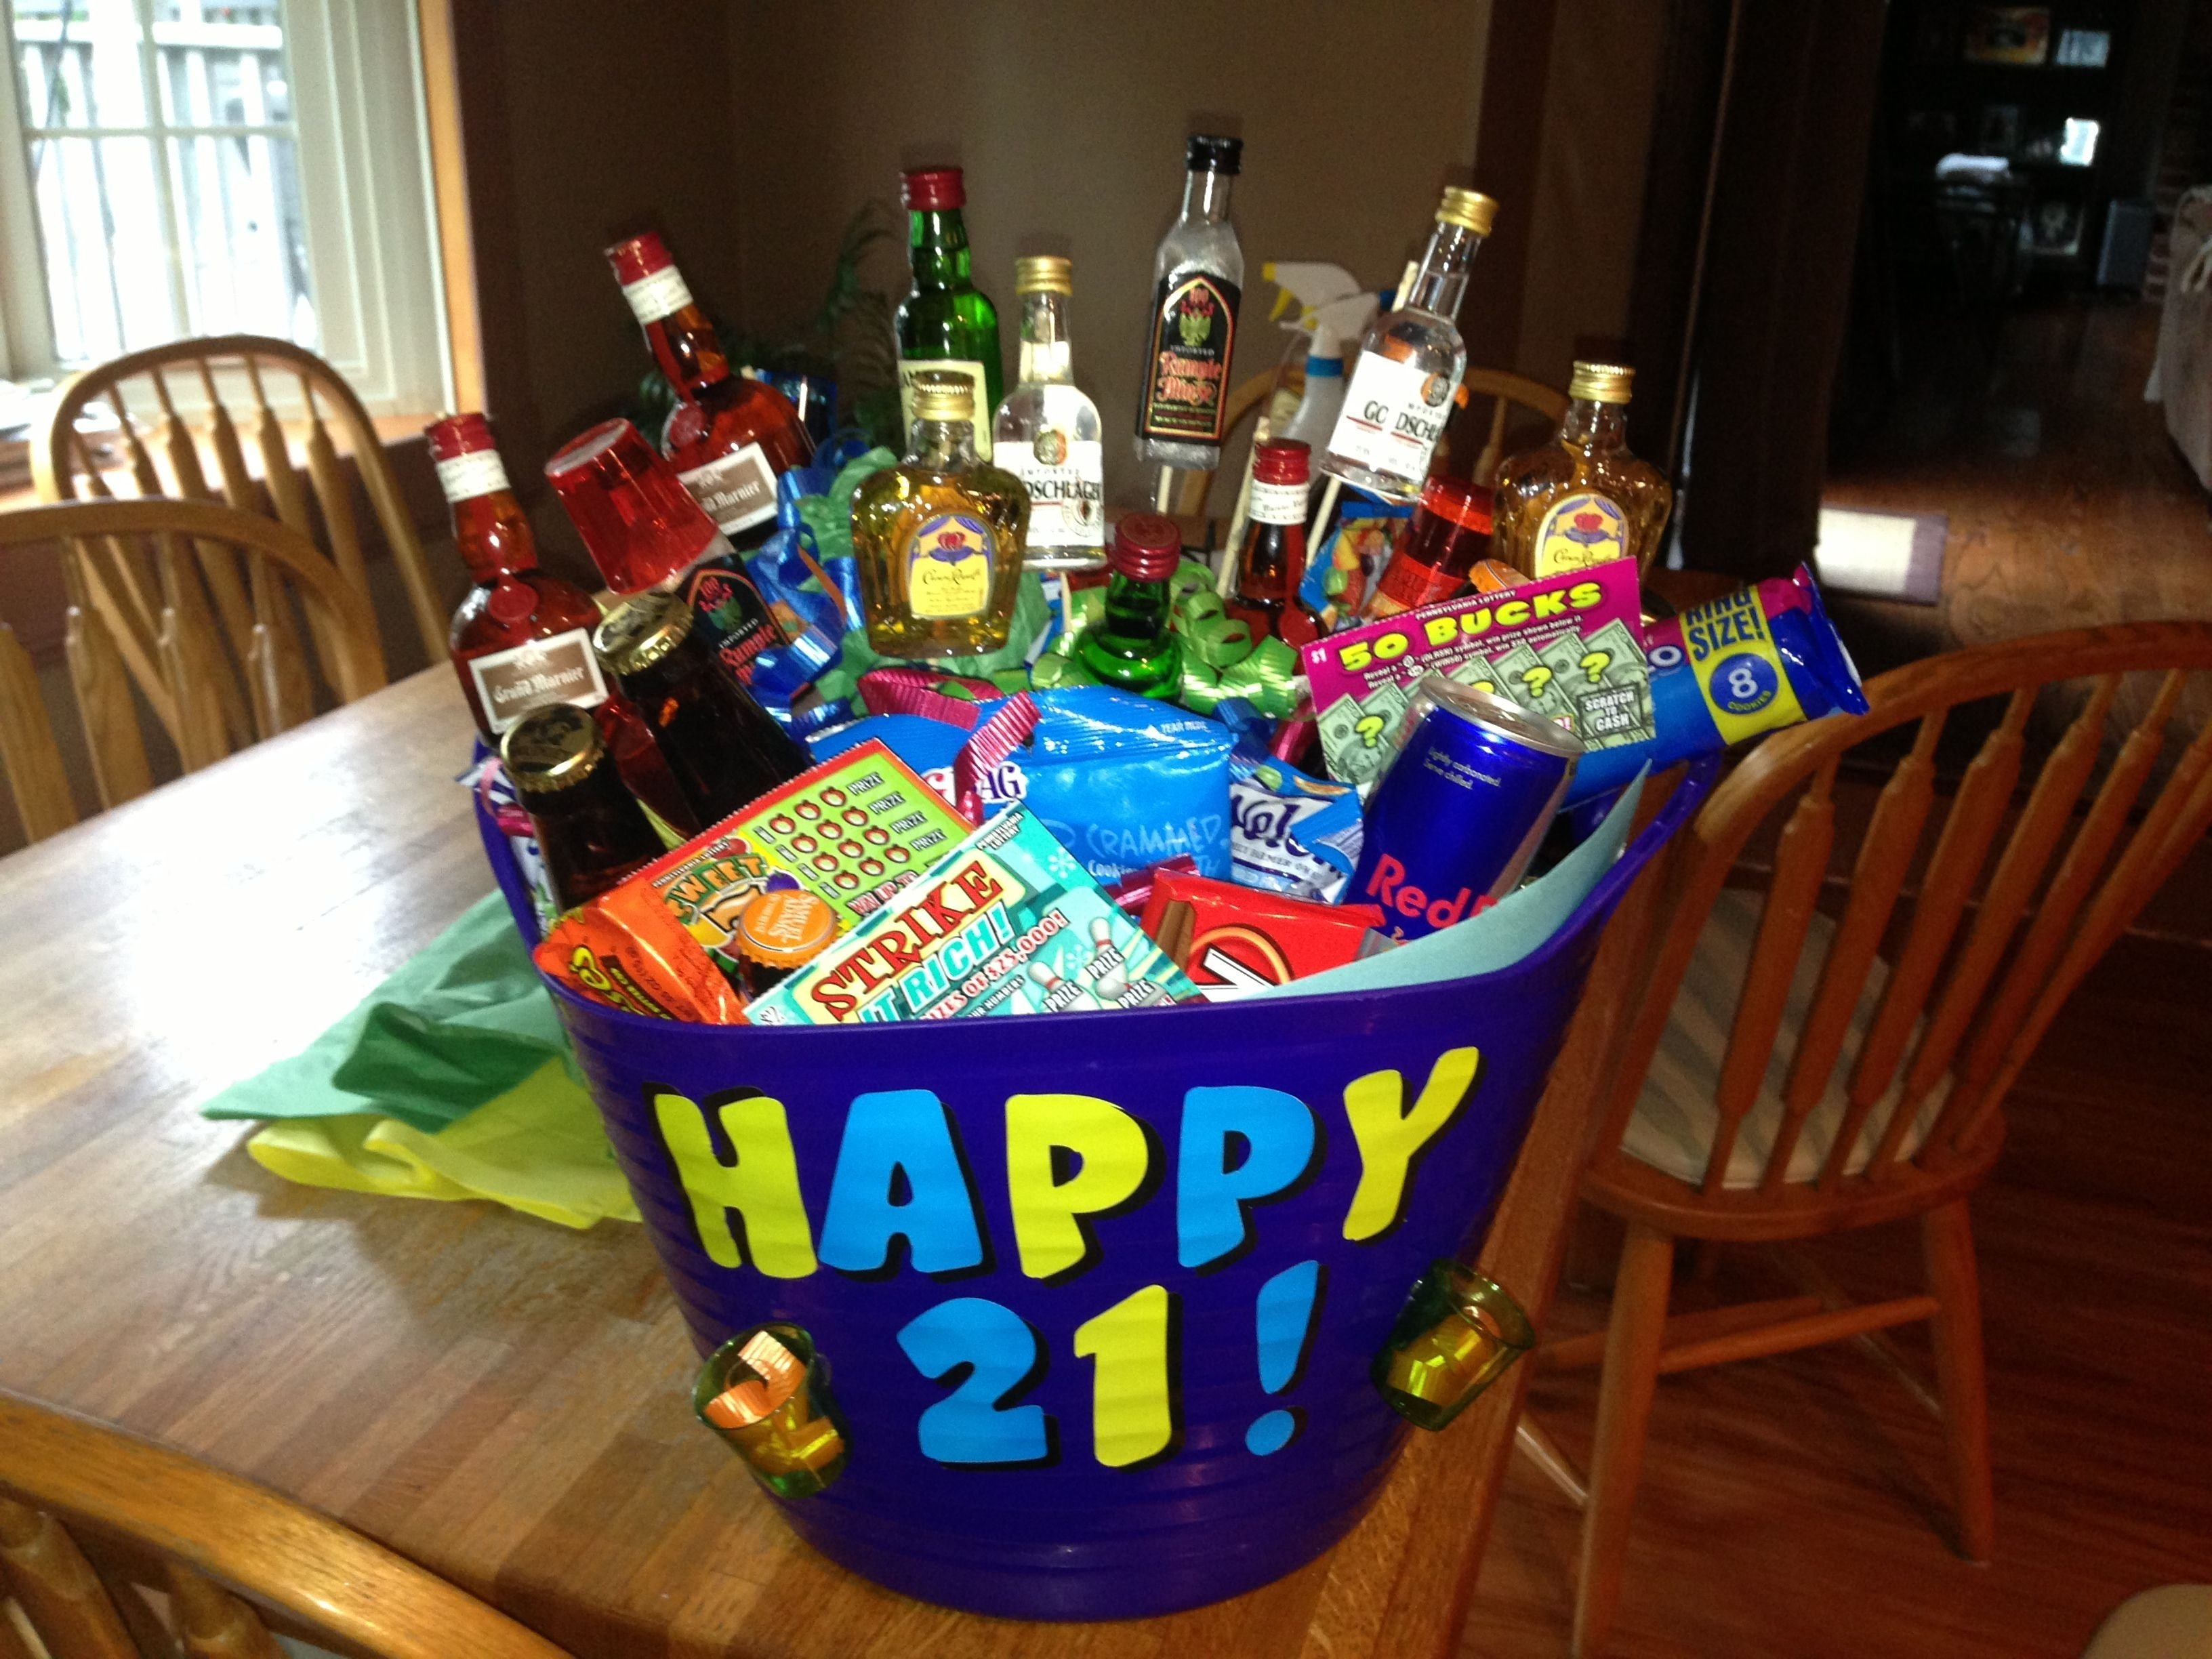 10 Fabulous 21 Birthday Ideas For Boyfriend 21st birthday basket for boyfriend crafty pinterest 21st 7 2021